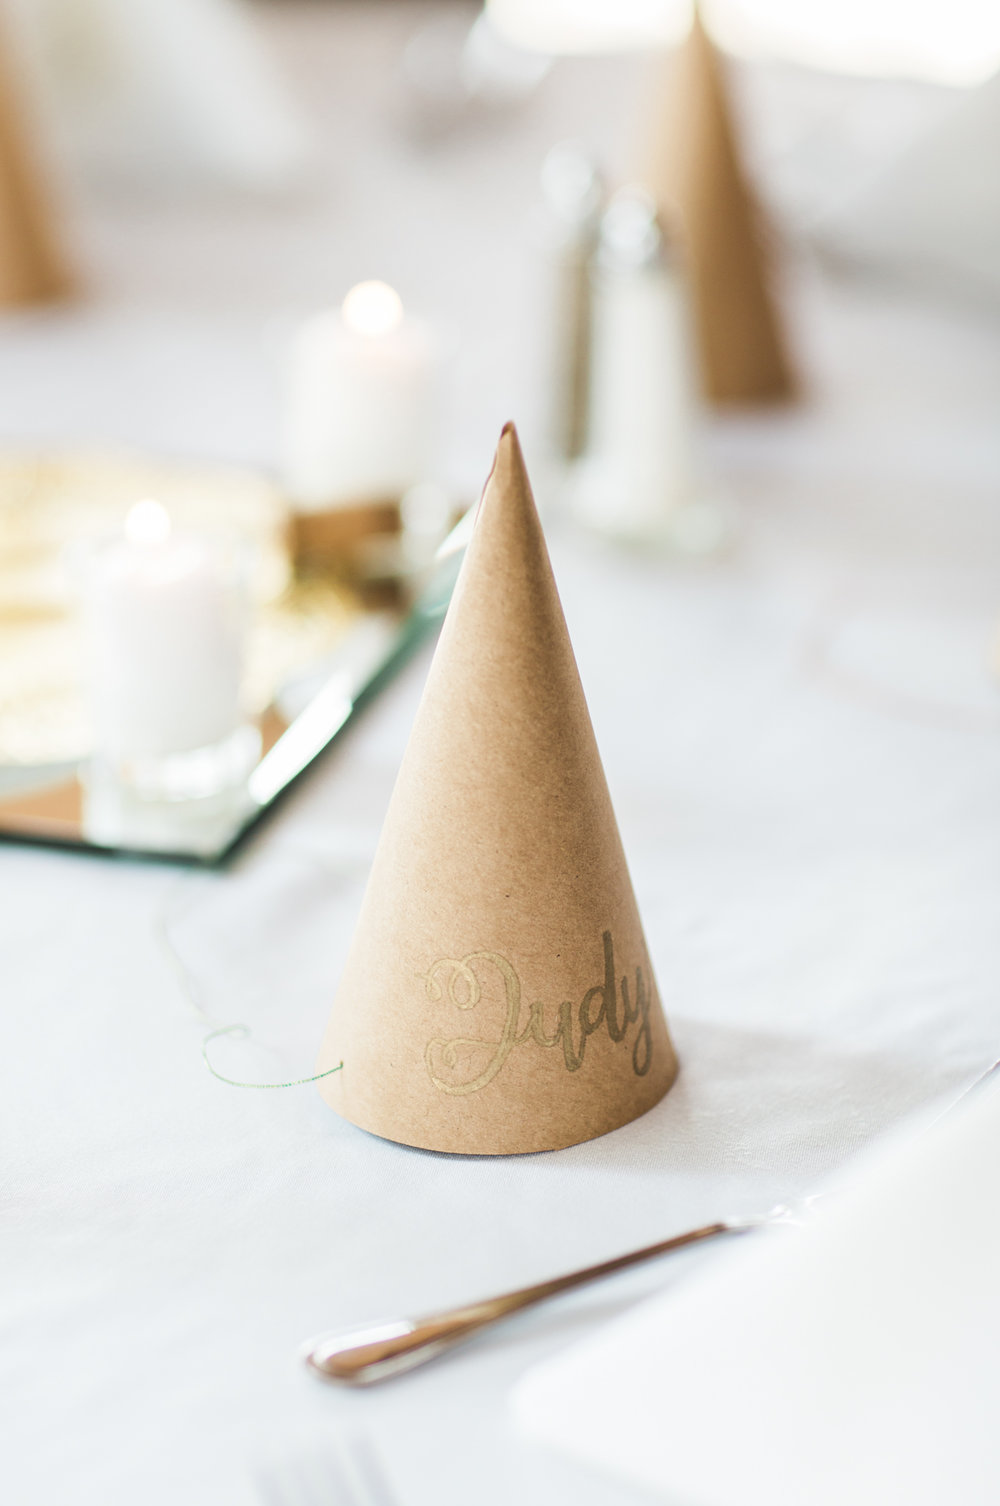 brown paper hats for wedding with calligraphy names on them